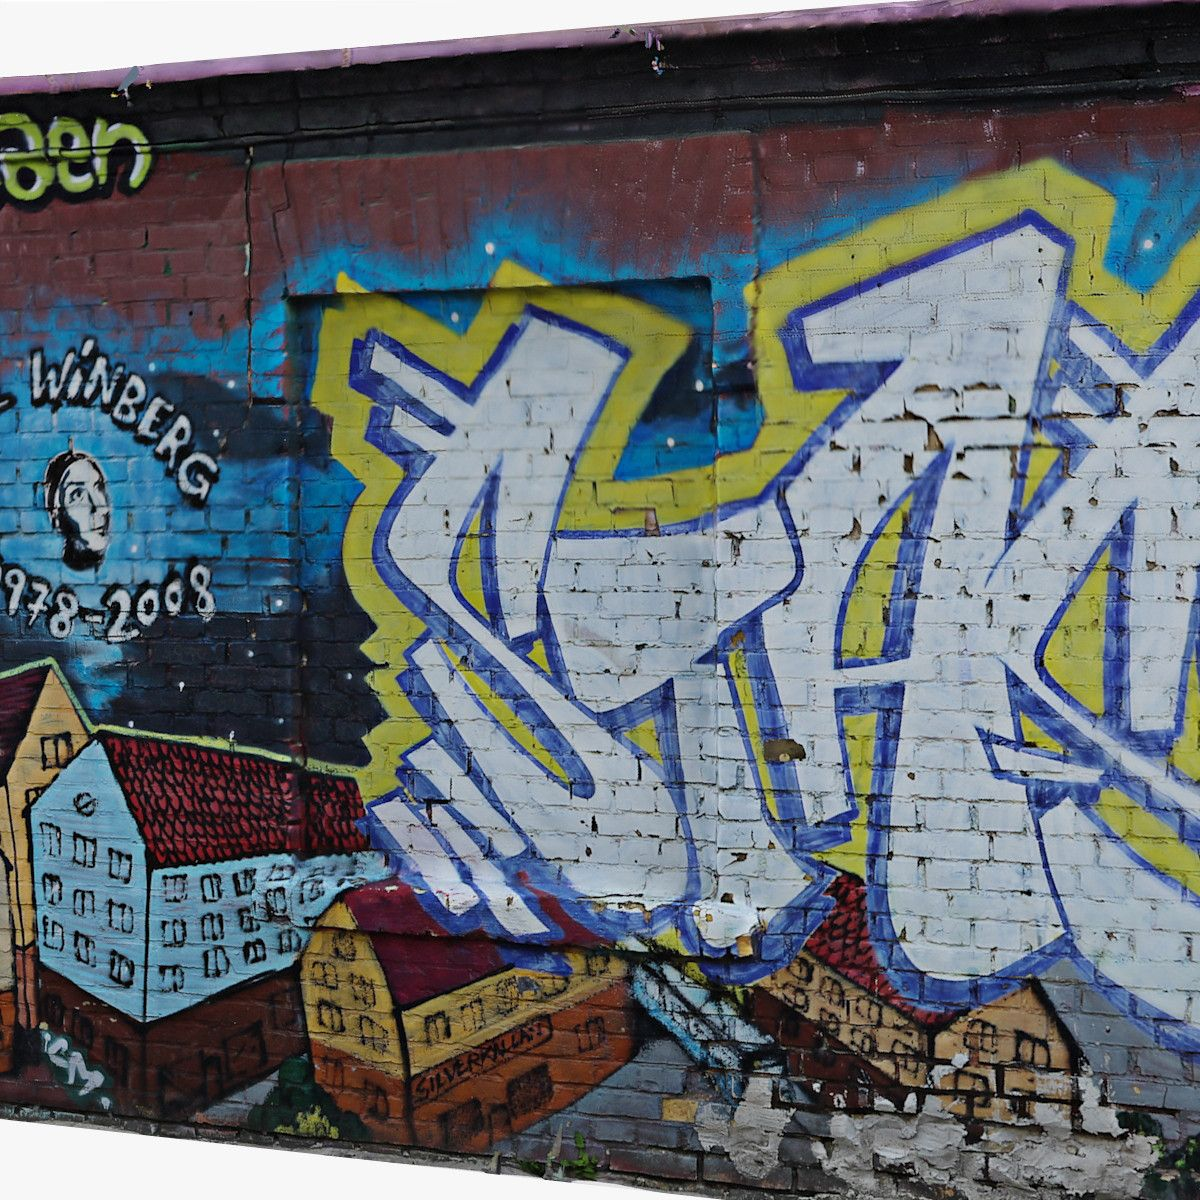 Graffiti wall d model d model dmodeling pinterest